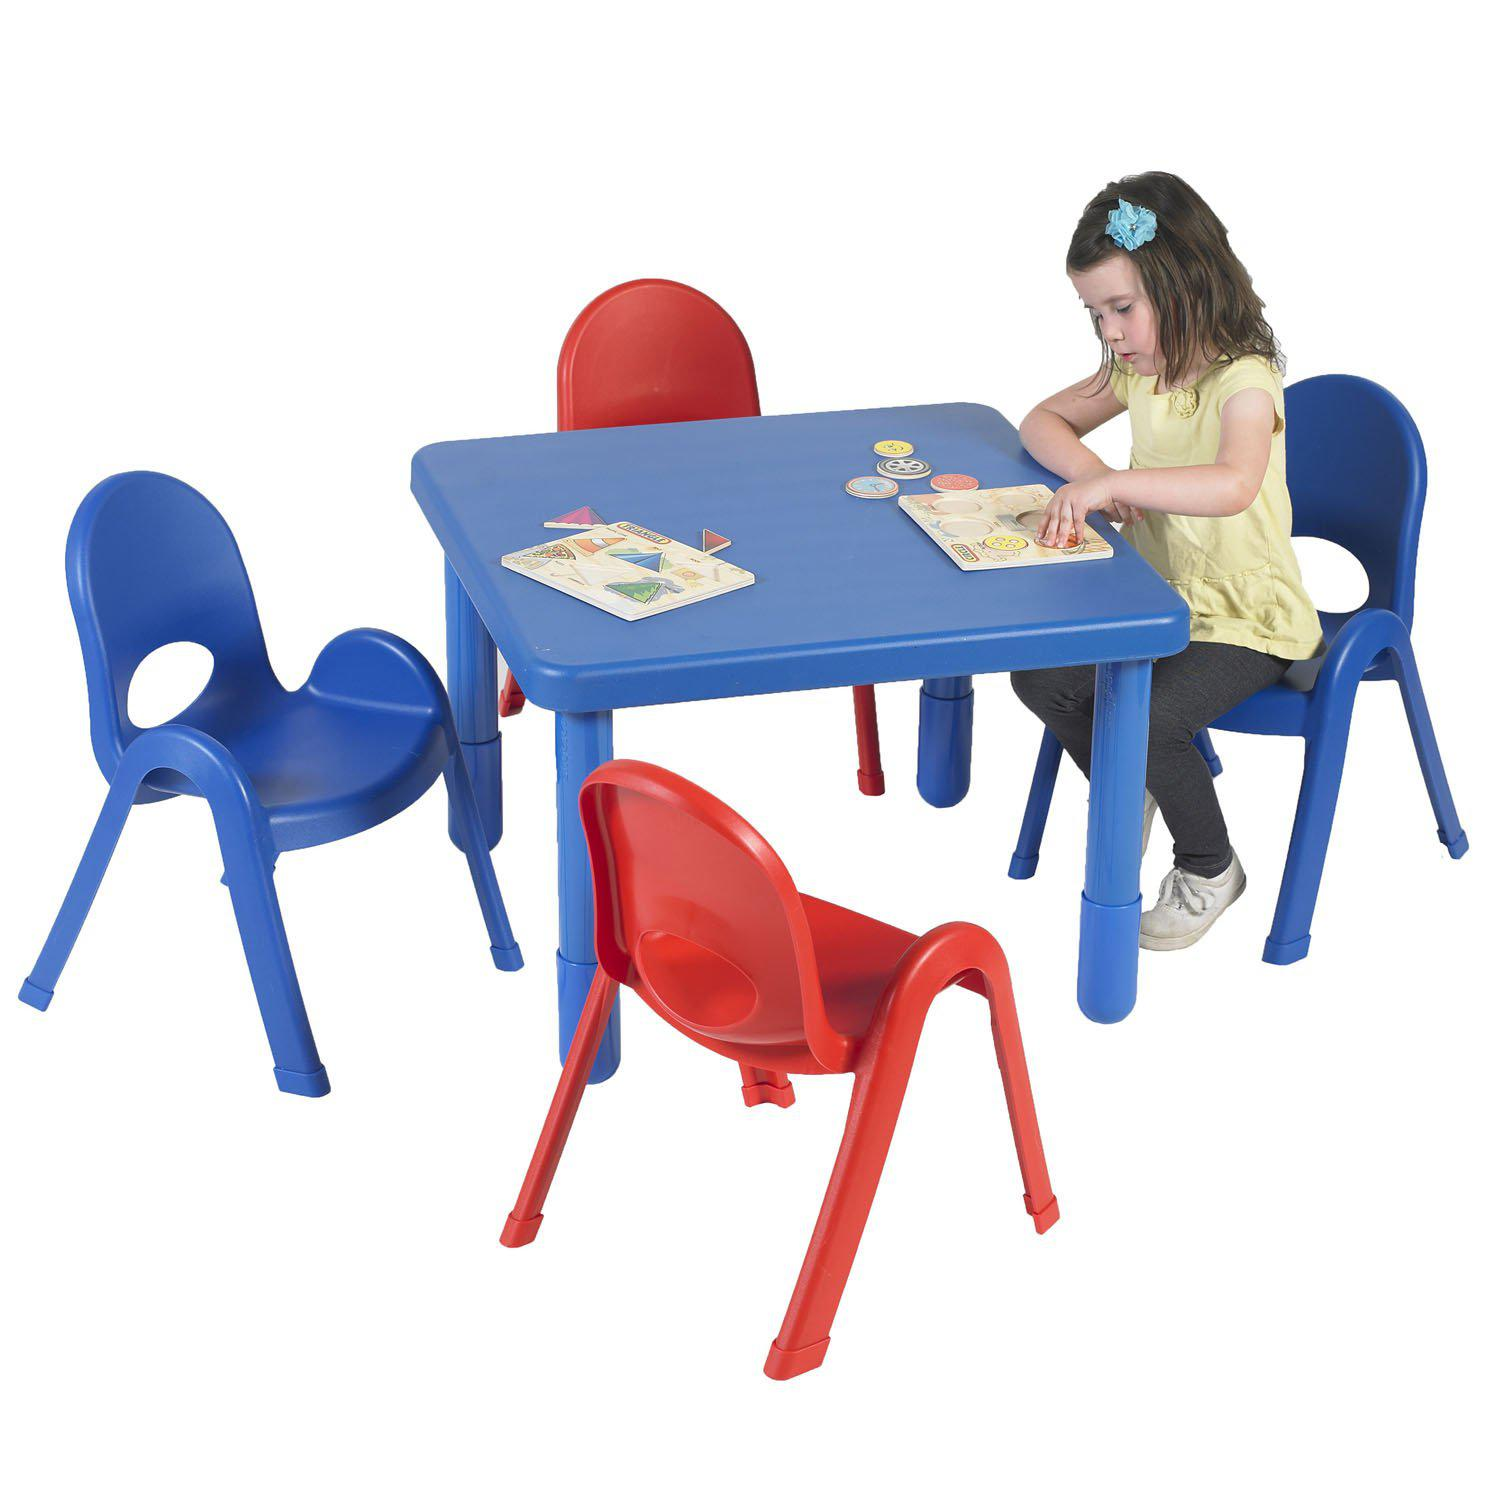 "Toddler MyValue™ Table and Chair Set - 28"" Square x 20""-High Royal Blue Table with 2 Royal Blue and 2 Candy Apple Red 11""-High Chairs"